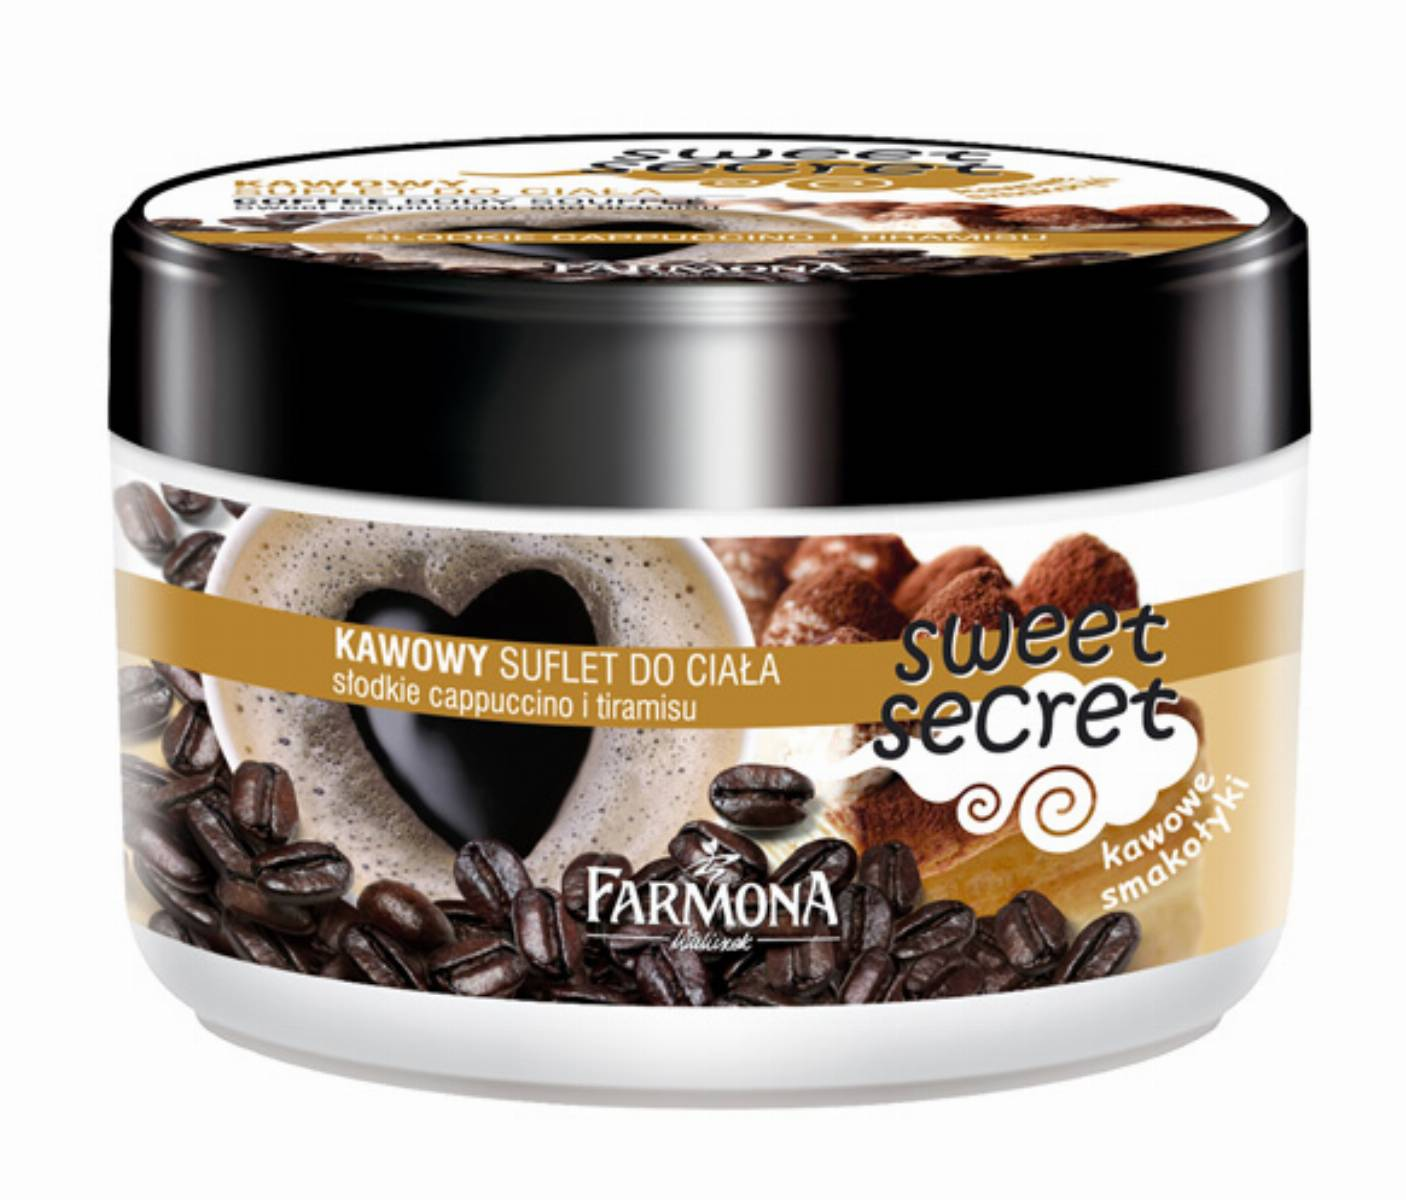 Farmona Sweet Secret Kawowy suflet do ciala